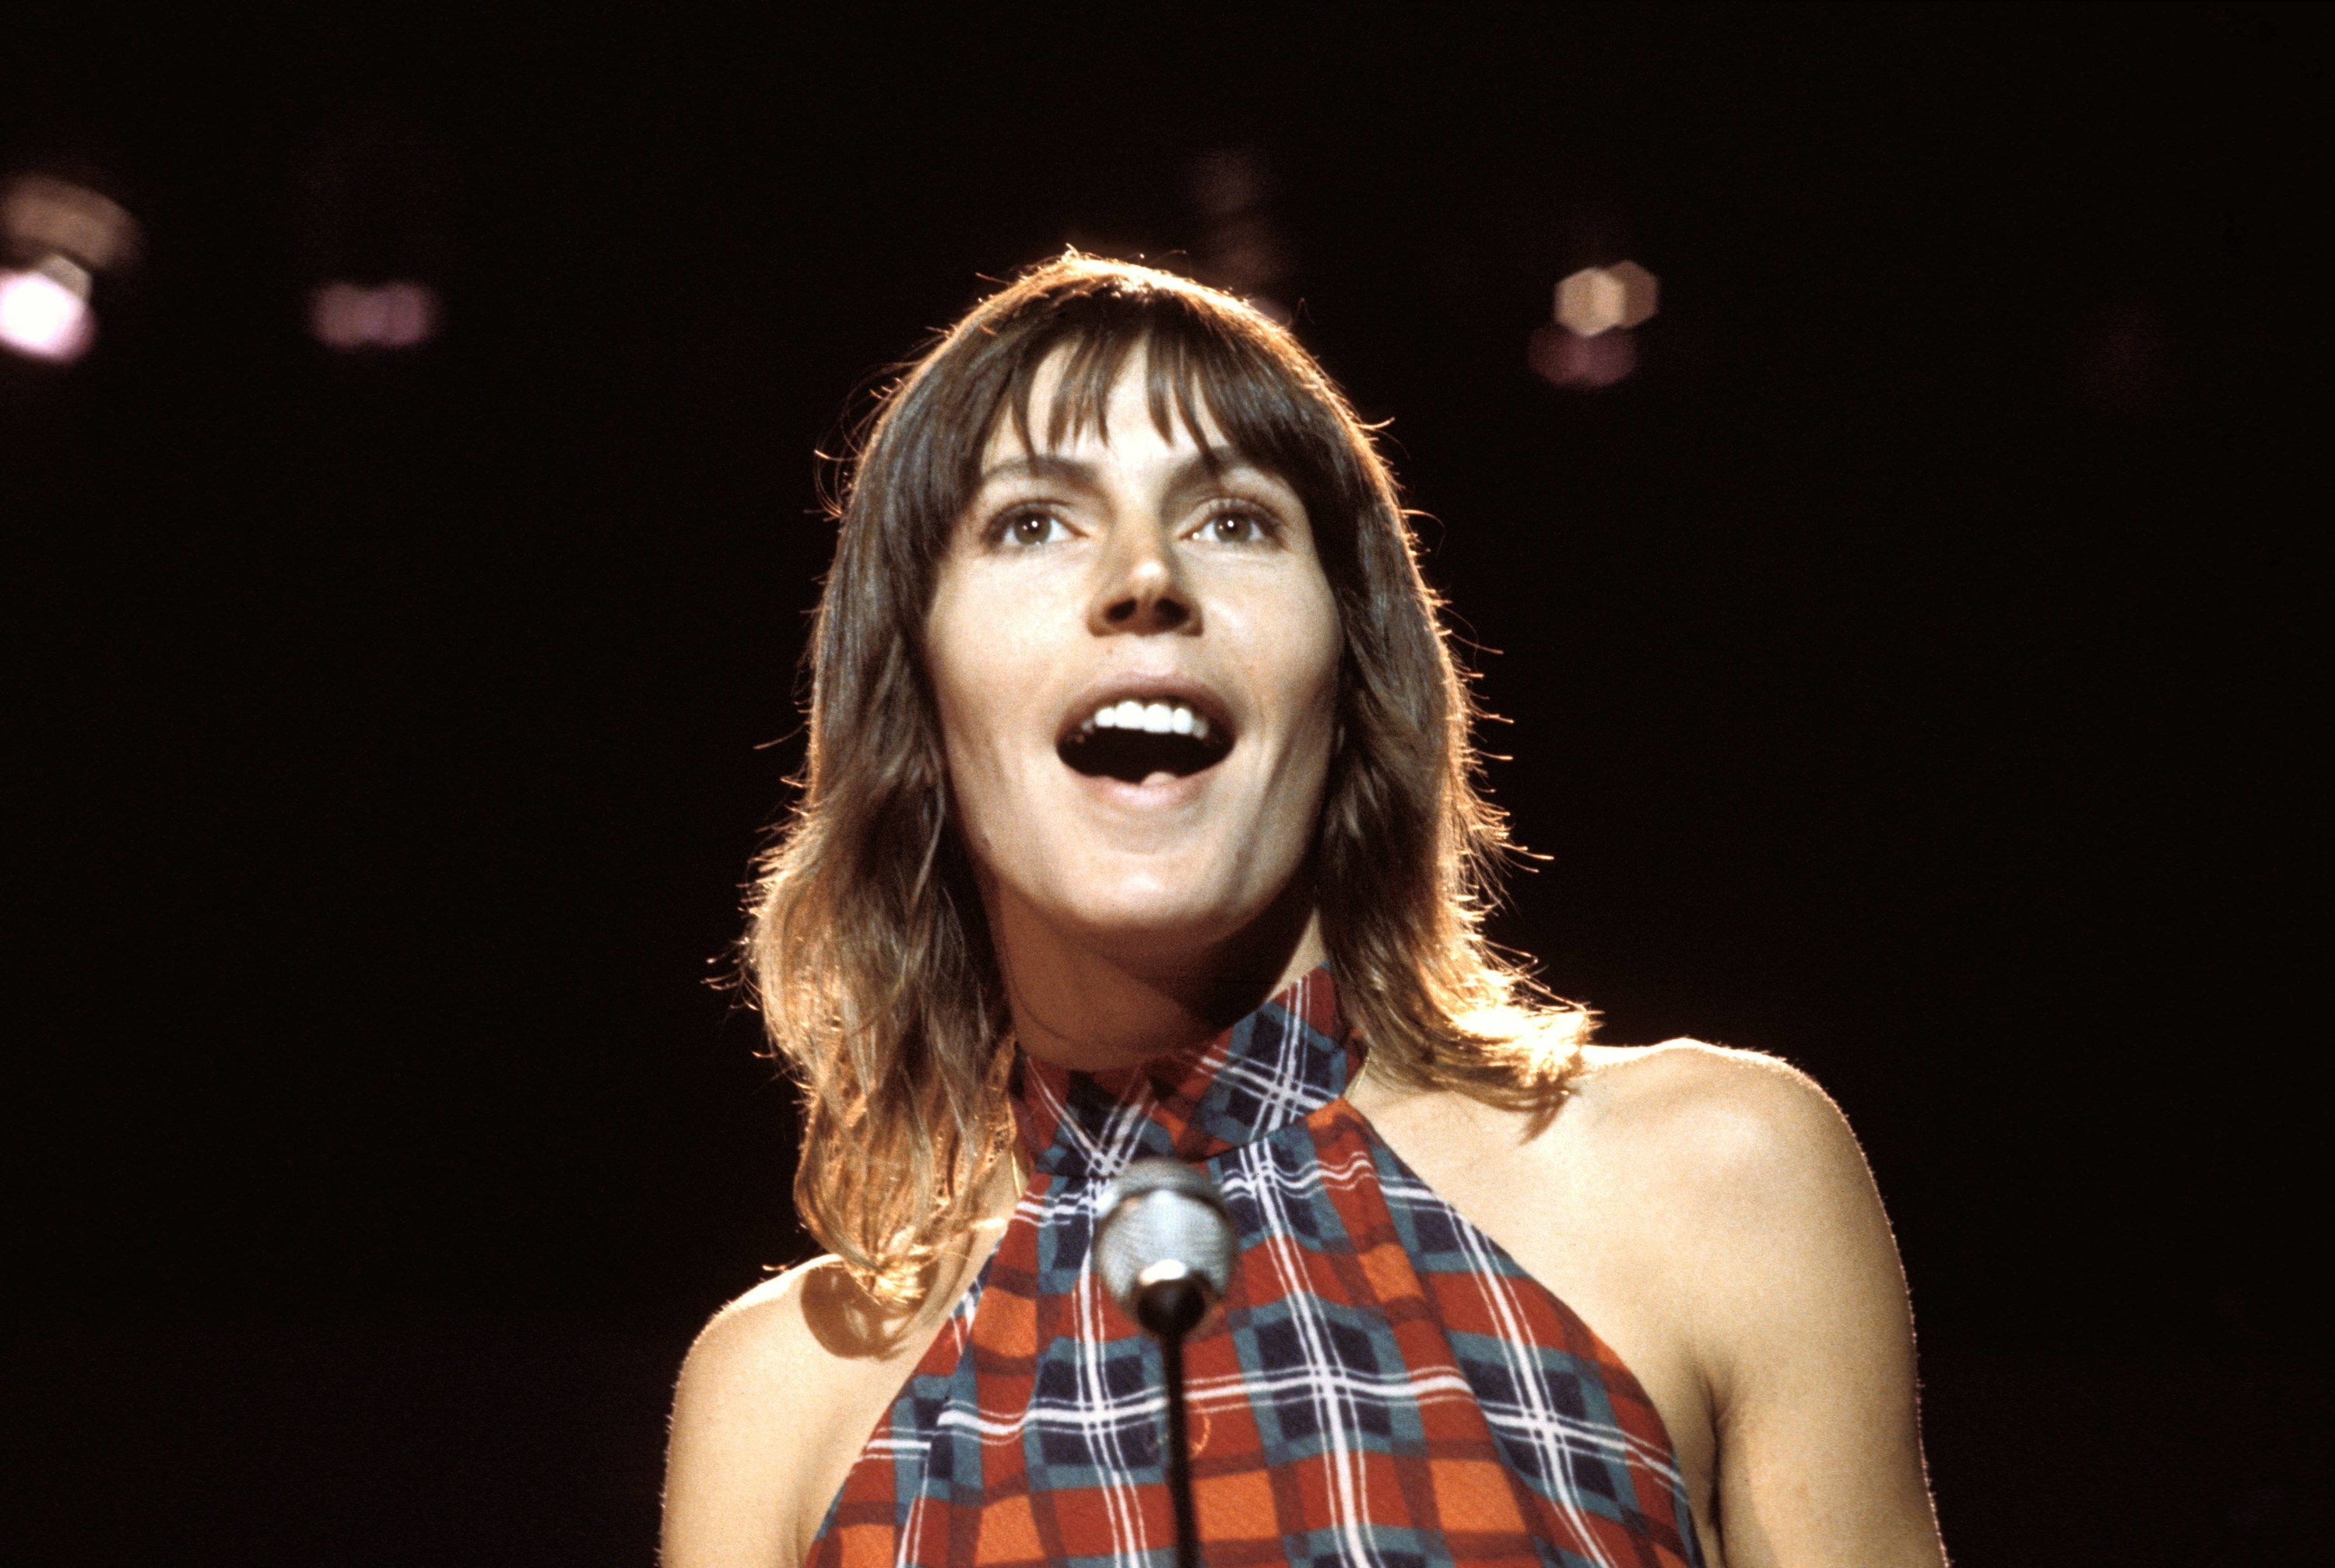 Reddy in a halter top singing on stage looking at the audience